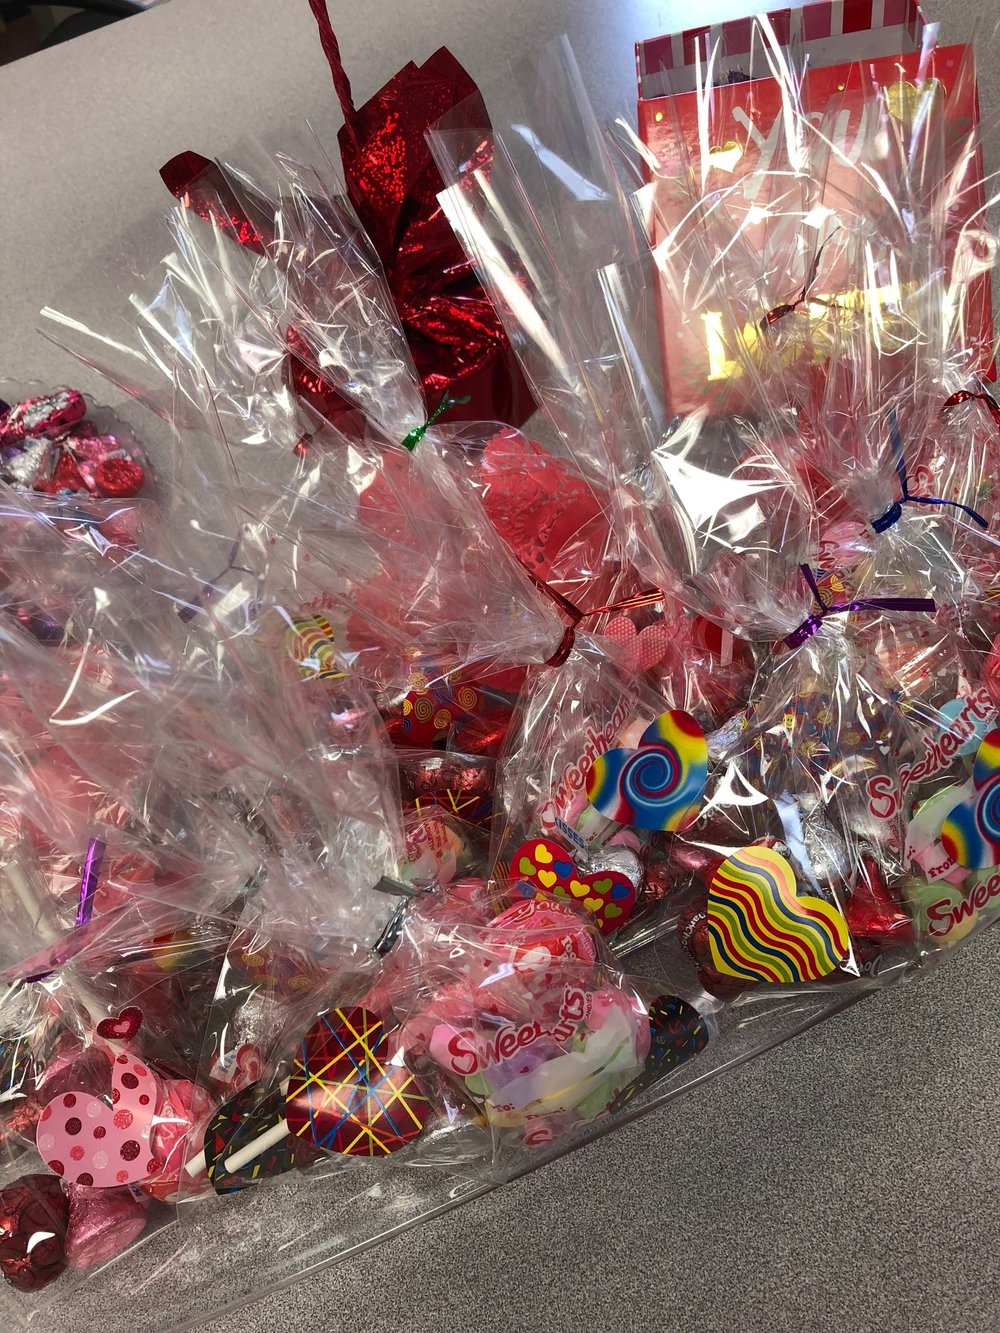 35 Acts of Kindness - Valentine Treats